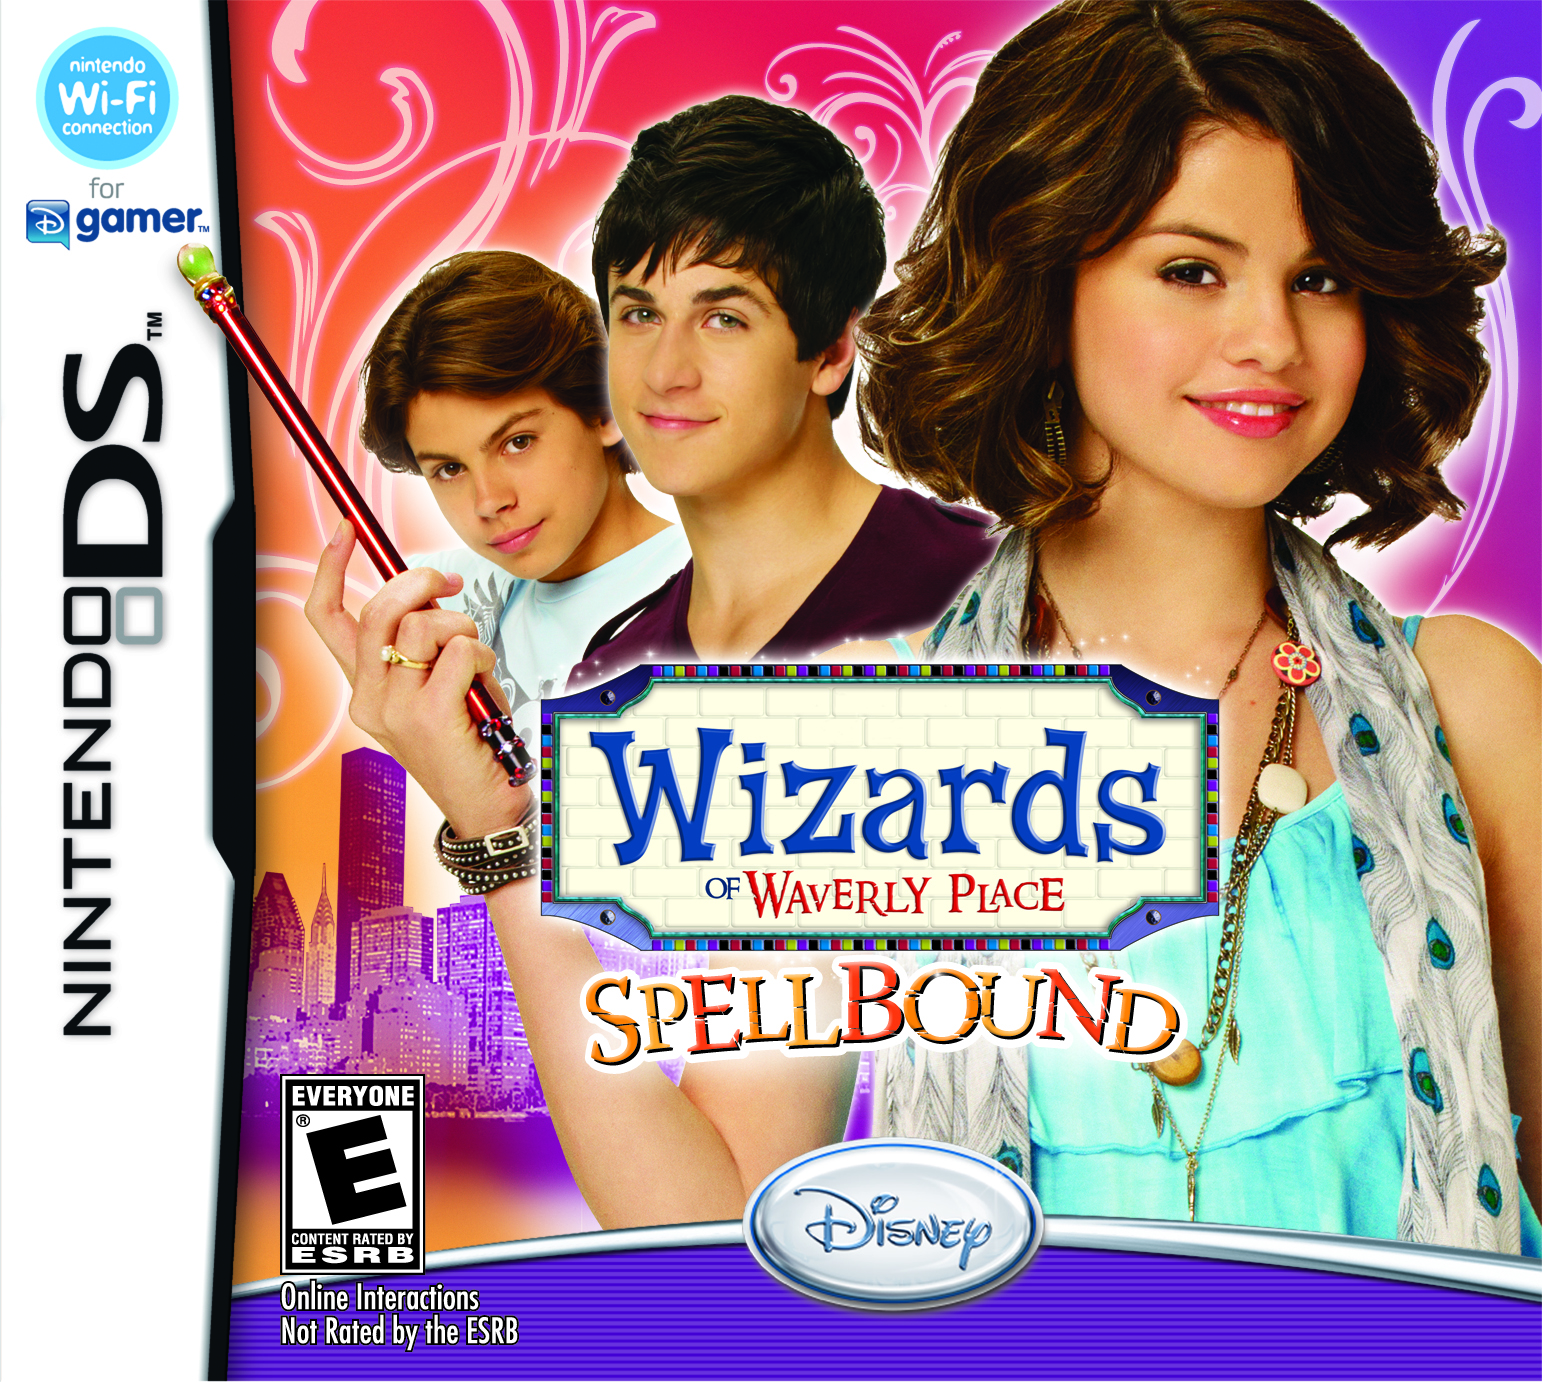 Make Some Magic With the Wizards of Waverly Place:Spellbound Nintendo DS Game